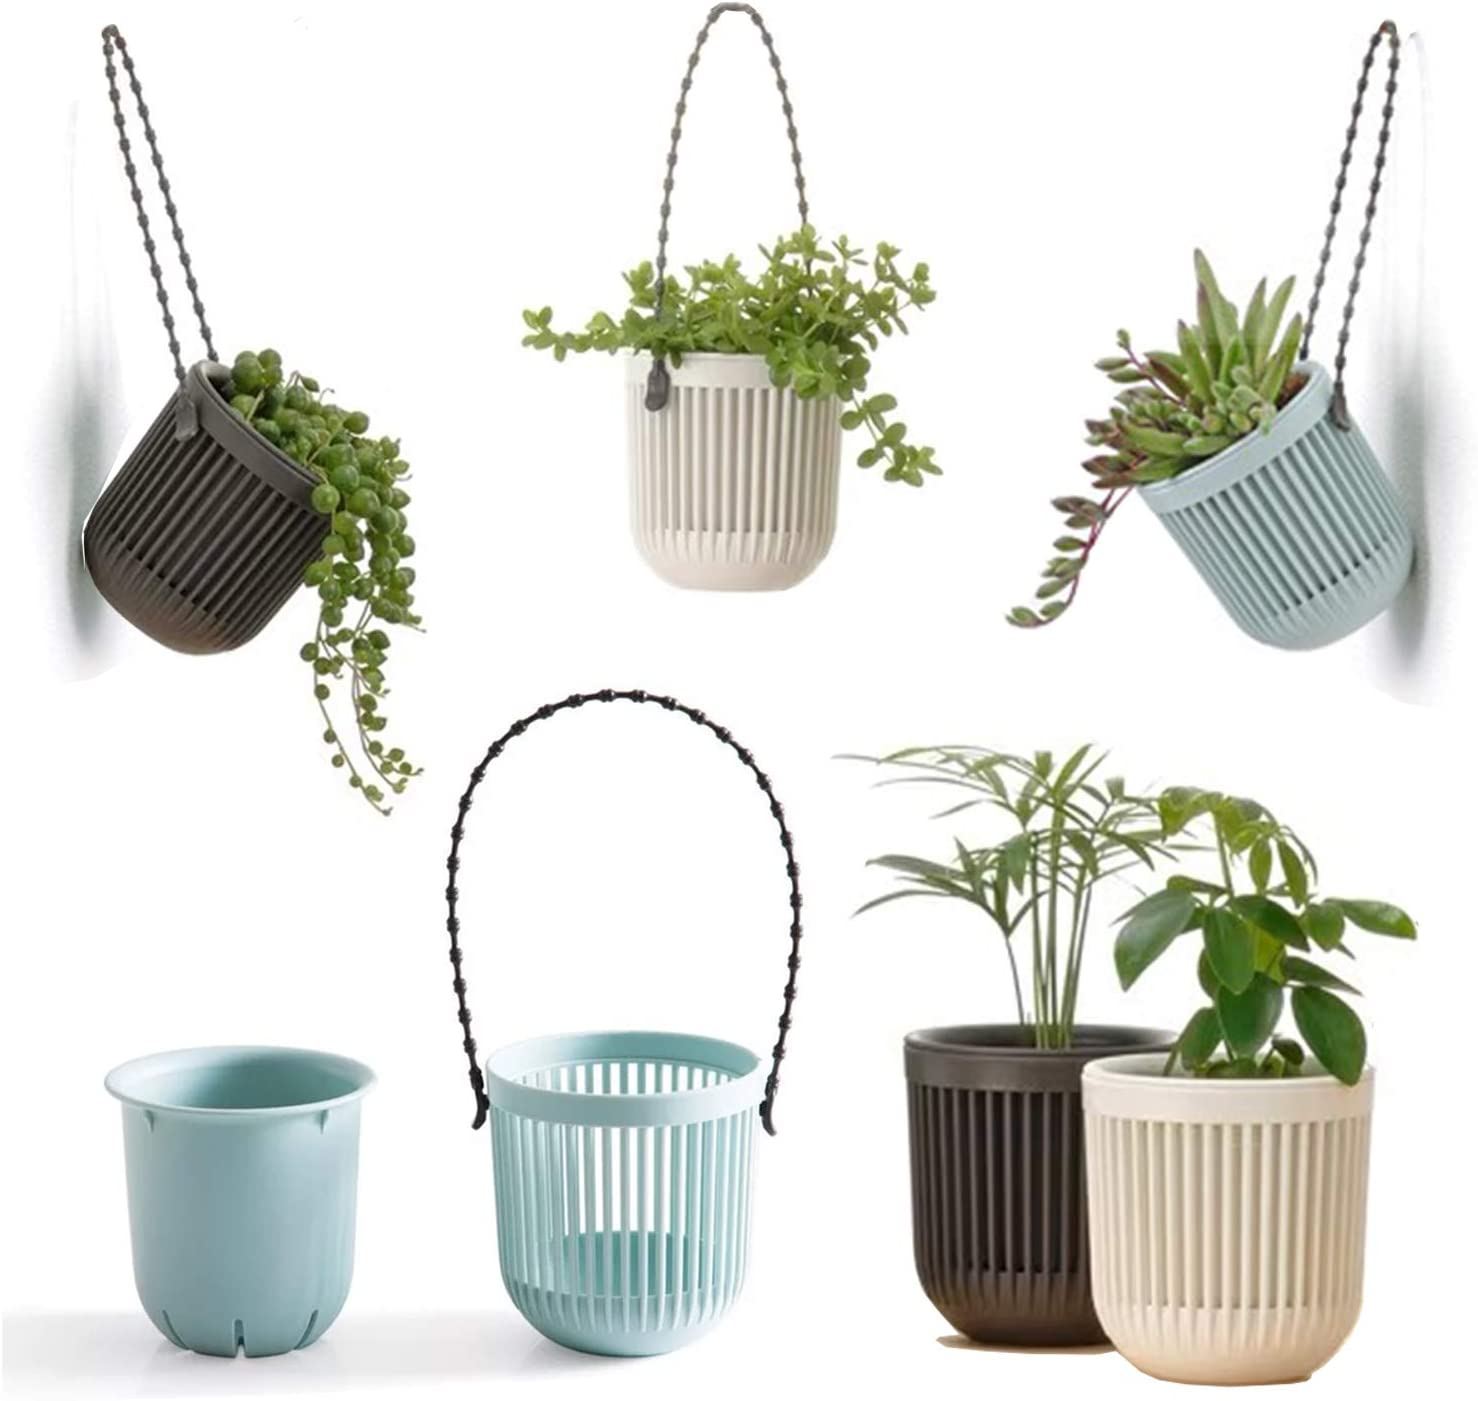 Melphoe 3 5 Two Piece Succulent Planters Pots With Drainage Flexible Removable Handle Planting Pots Flower Pots Small Planter Pots For Mini Plants Hanging Planter On Wall Or Window 6 Pcak Kitchen Dining